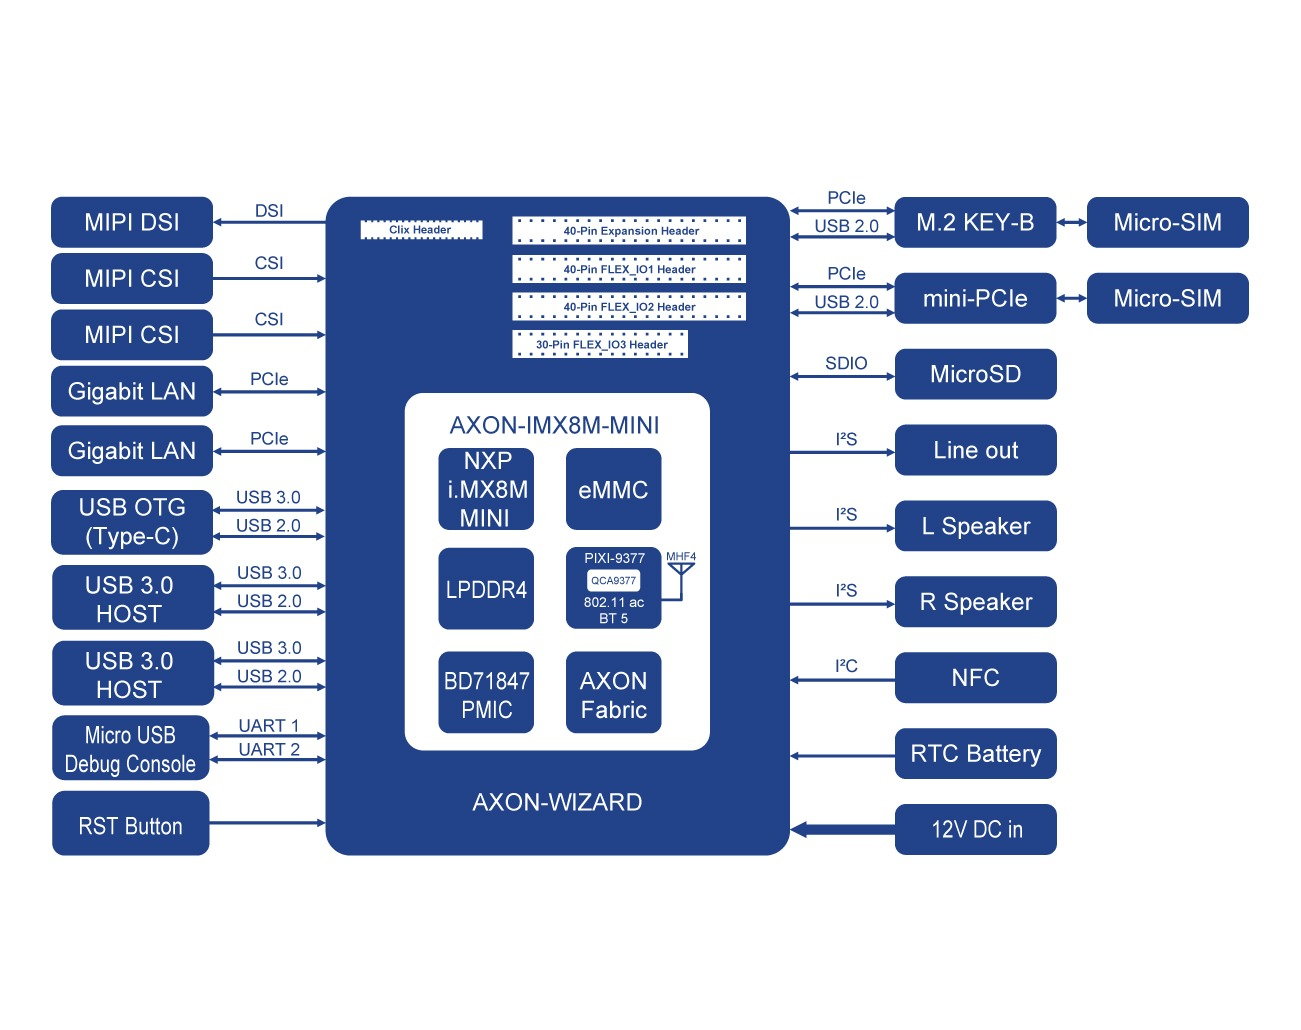 AXON-WIZARD-IMX8M-MINI Block Diagram